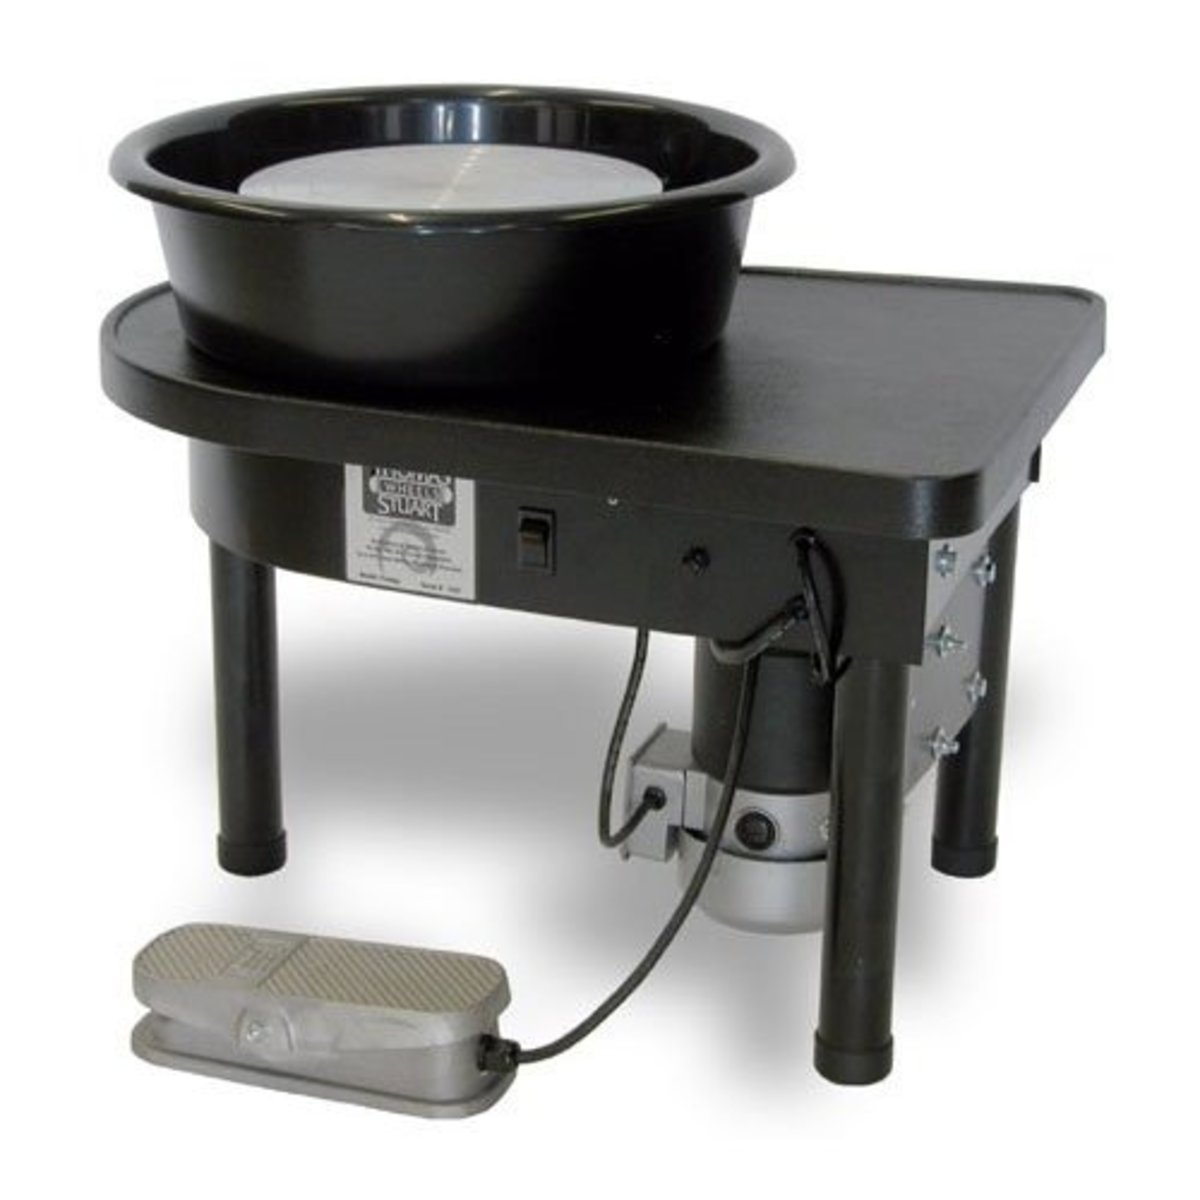 A Modern Pottery Wheel - Electric. Image Credit: Amazon.com